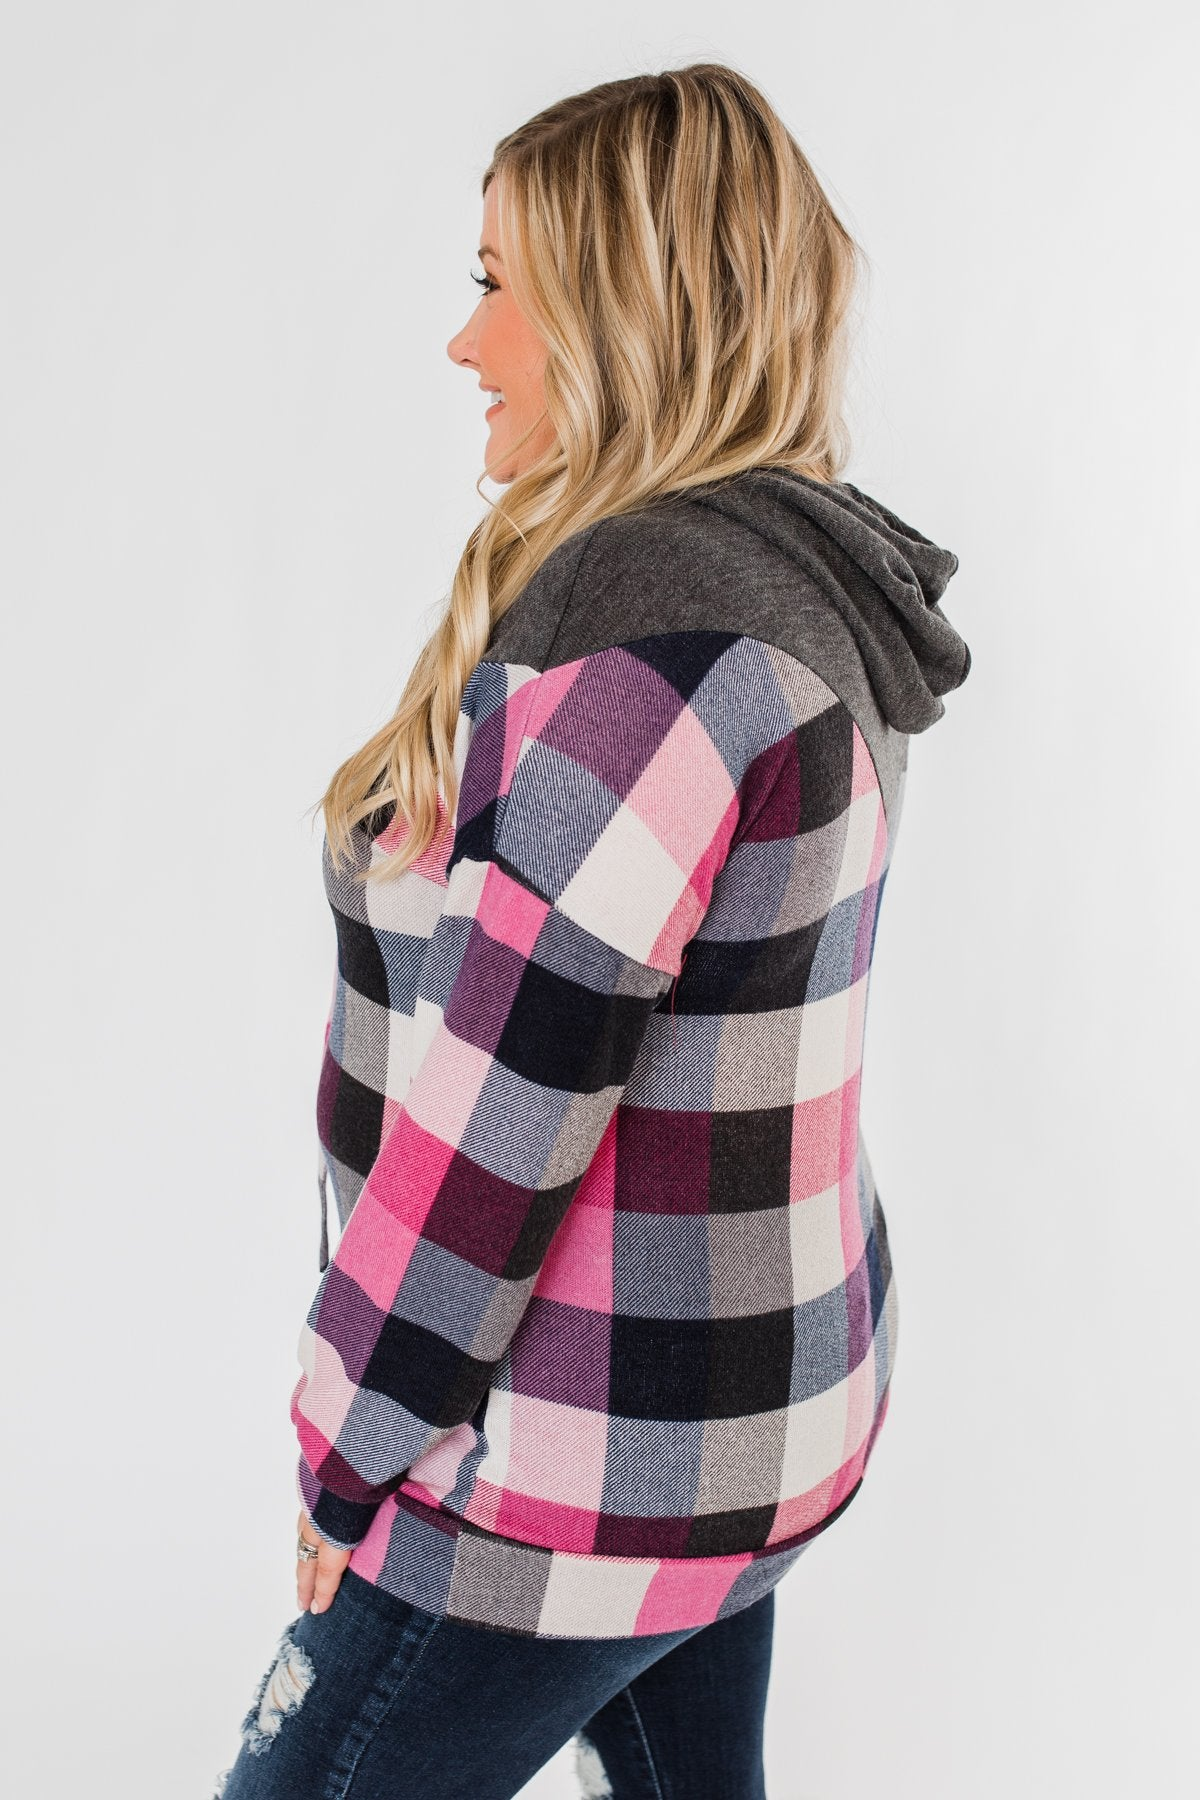 It's Always Been You Flannel Hoodie- Charcoal & Pink Tones